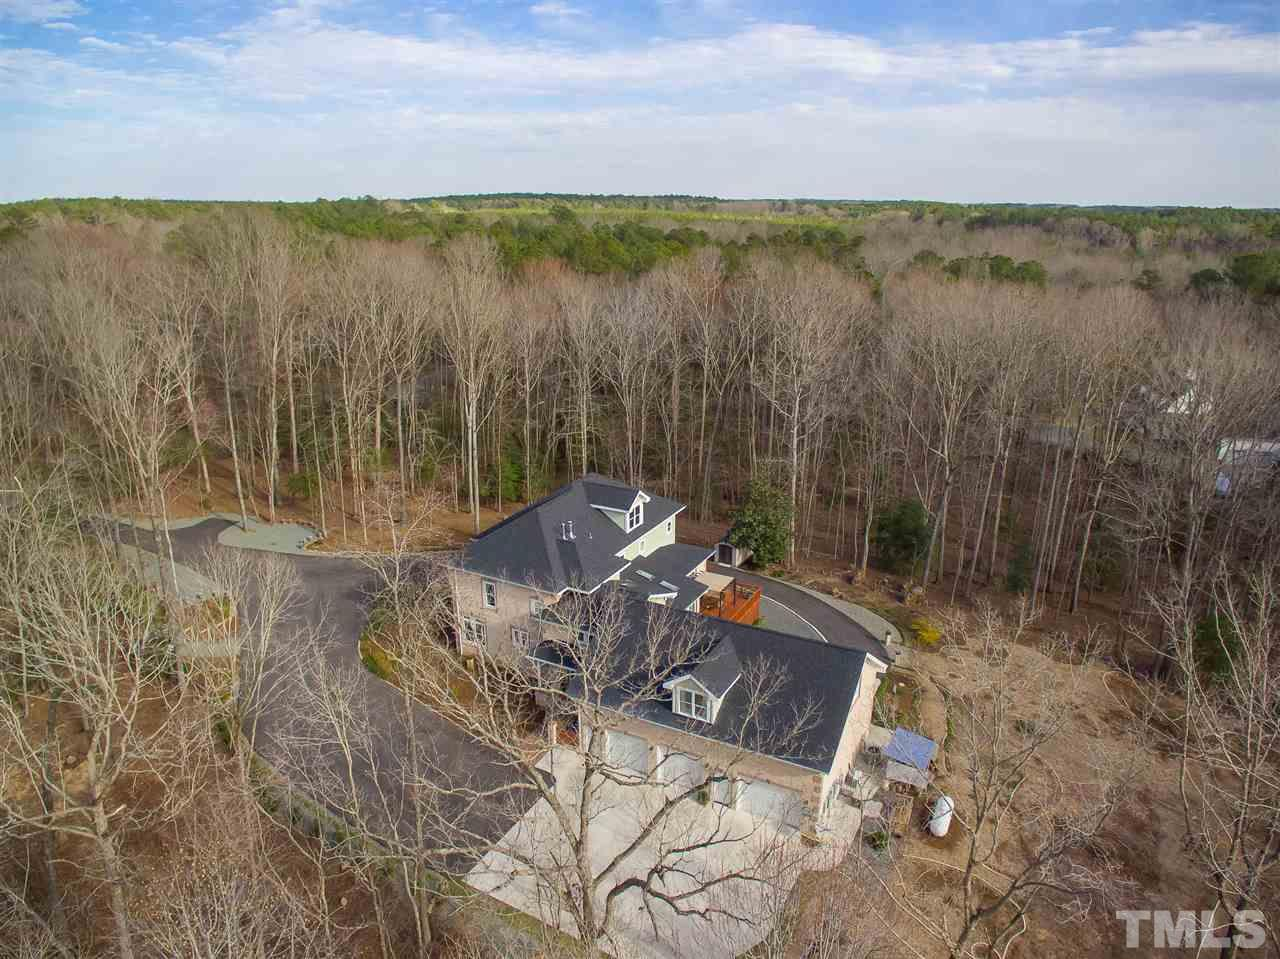 Property is Private and Secluded! Close to White Pines Preserve! Deer & Rabbit fence around perimeter of property!